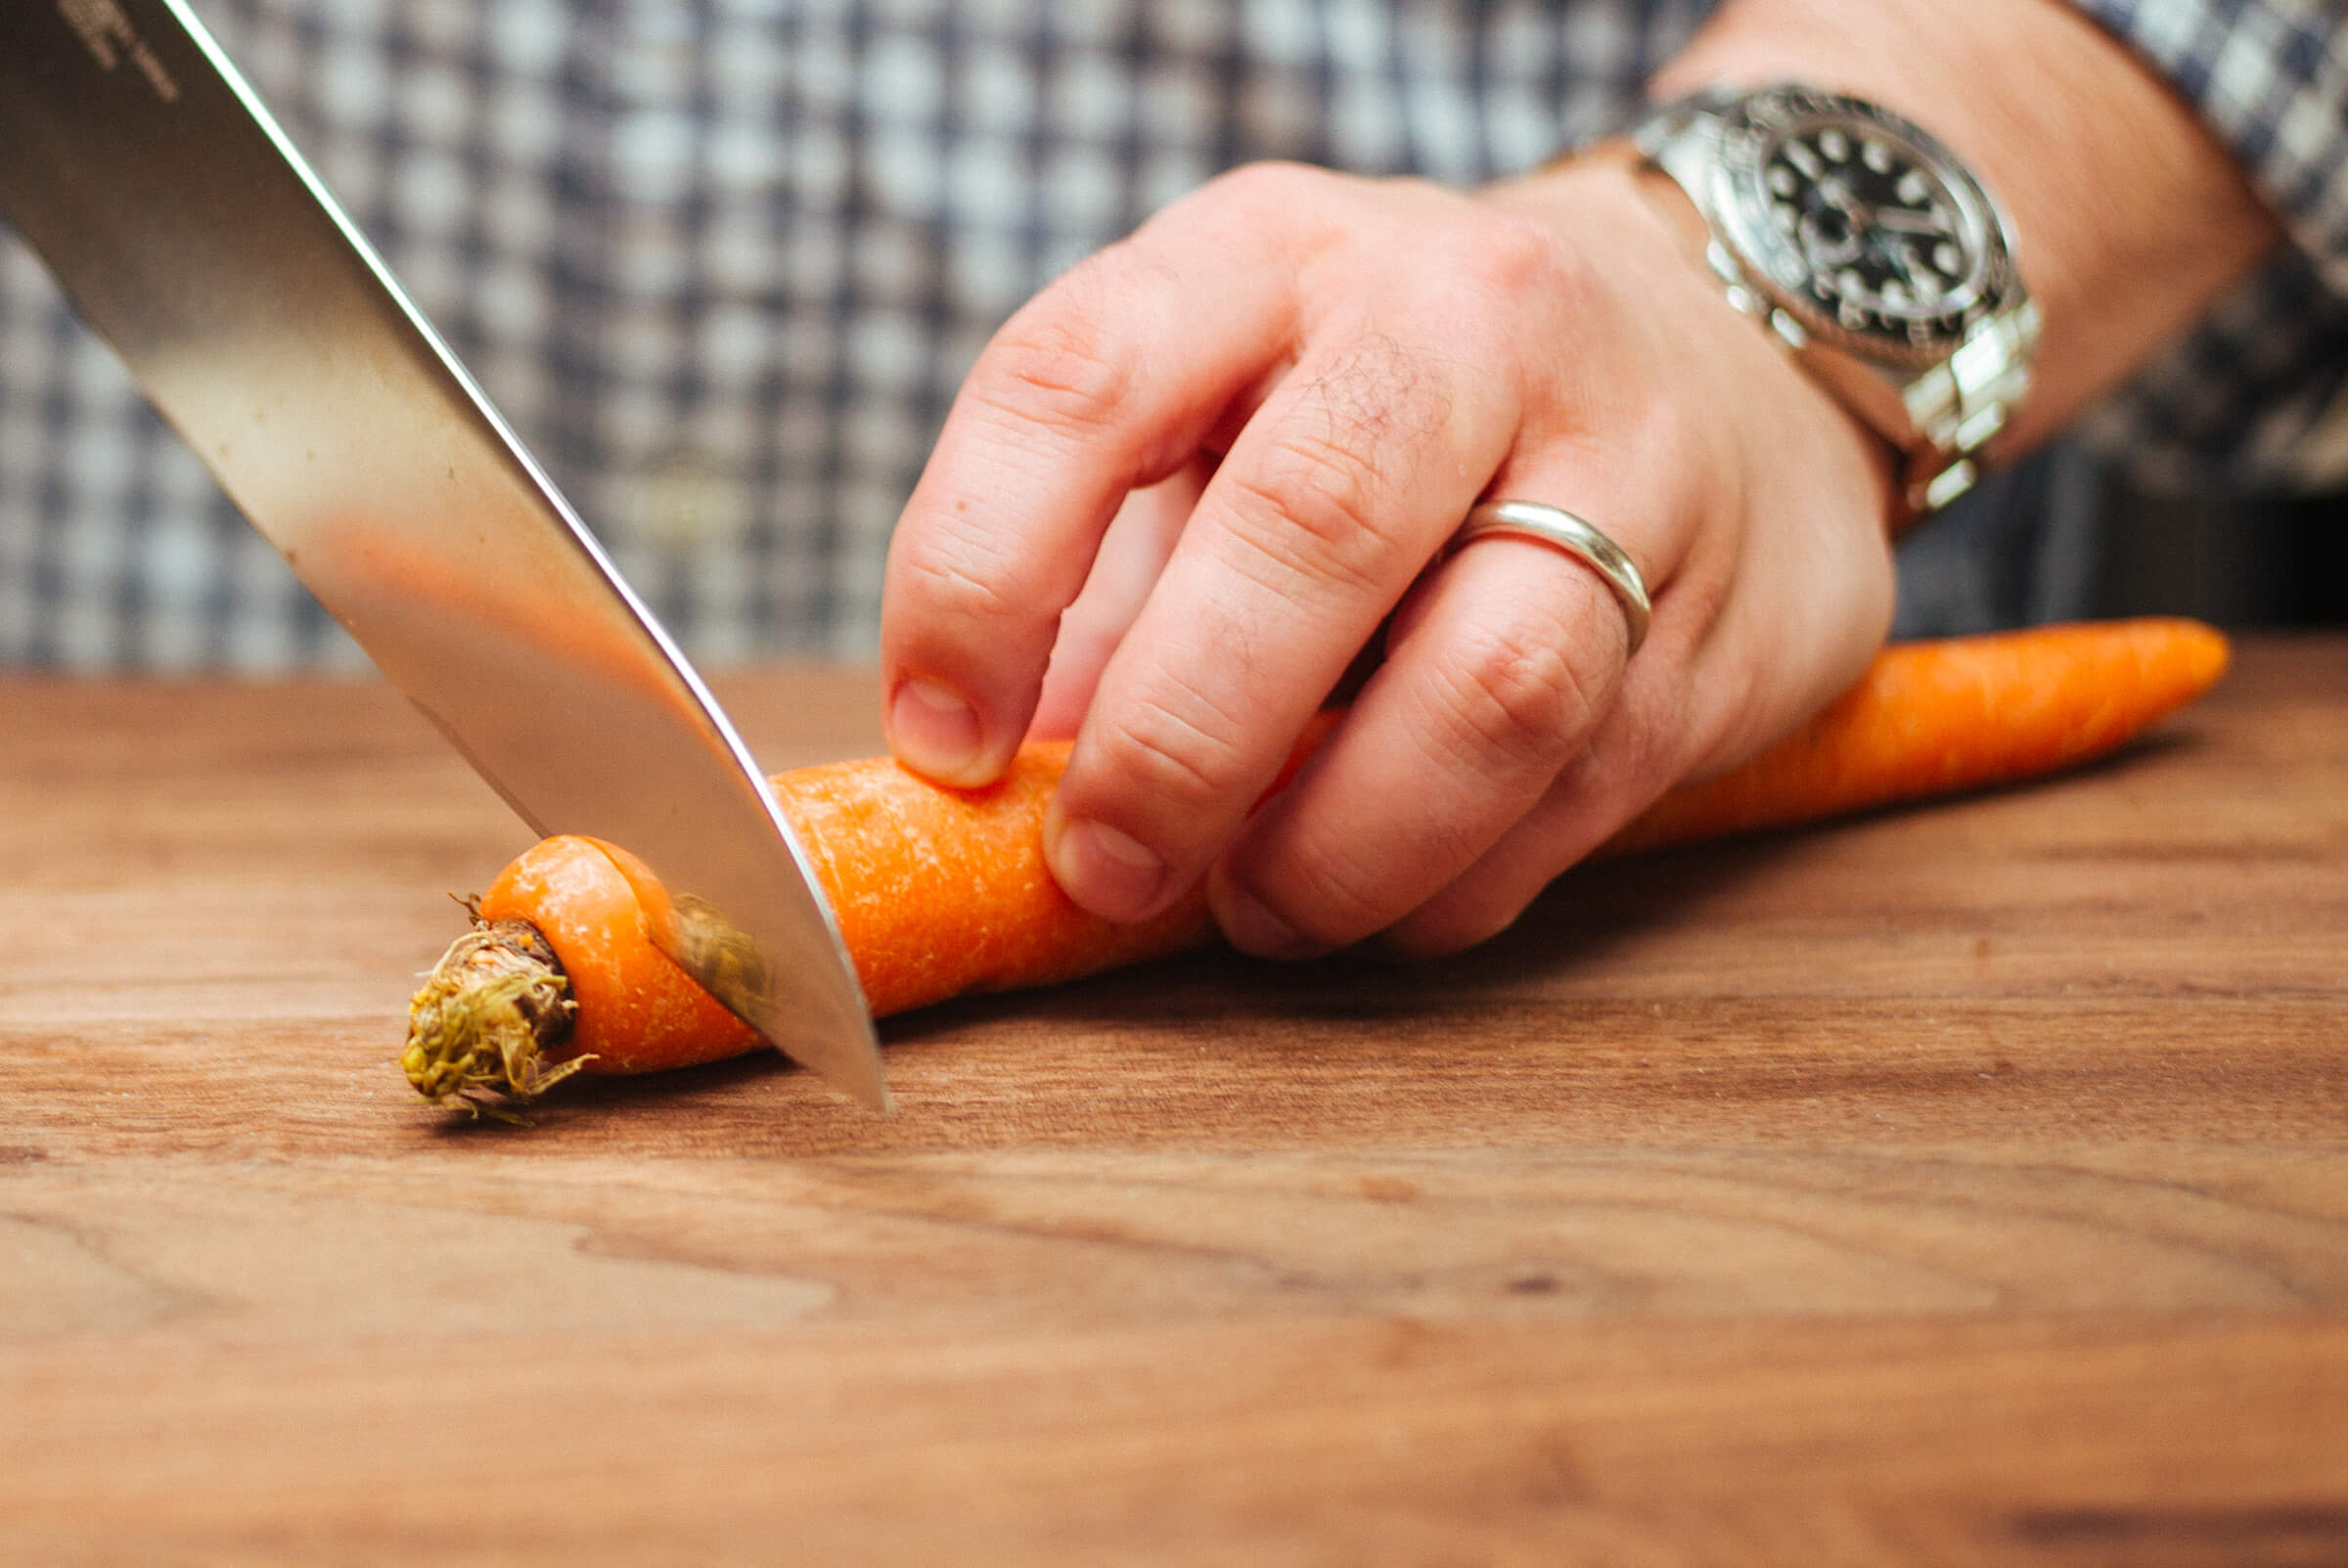 Trimming a carrot